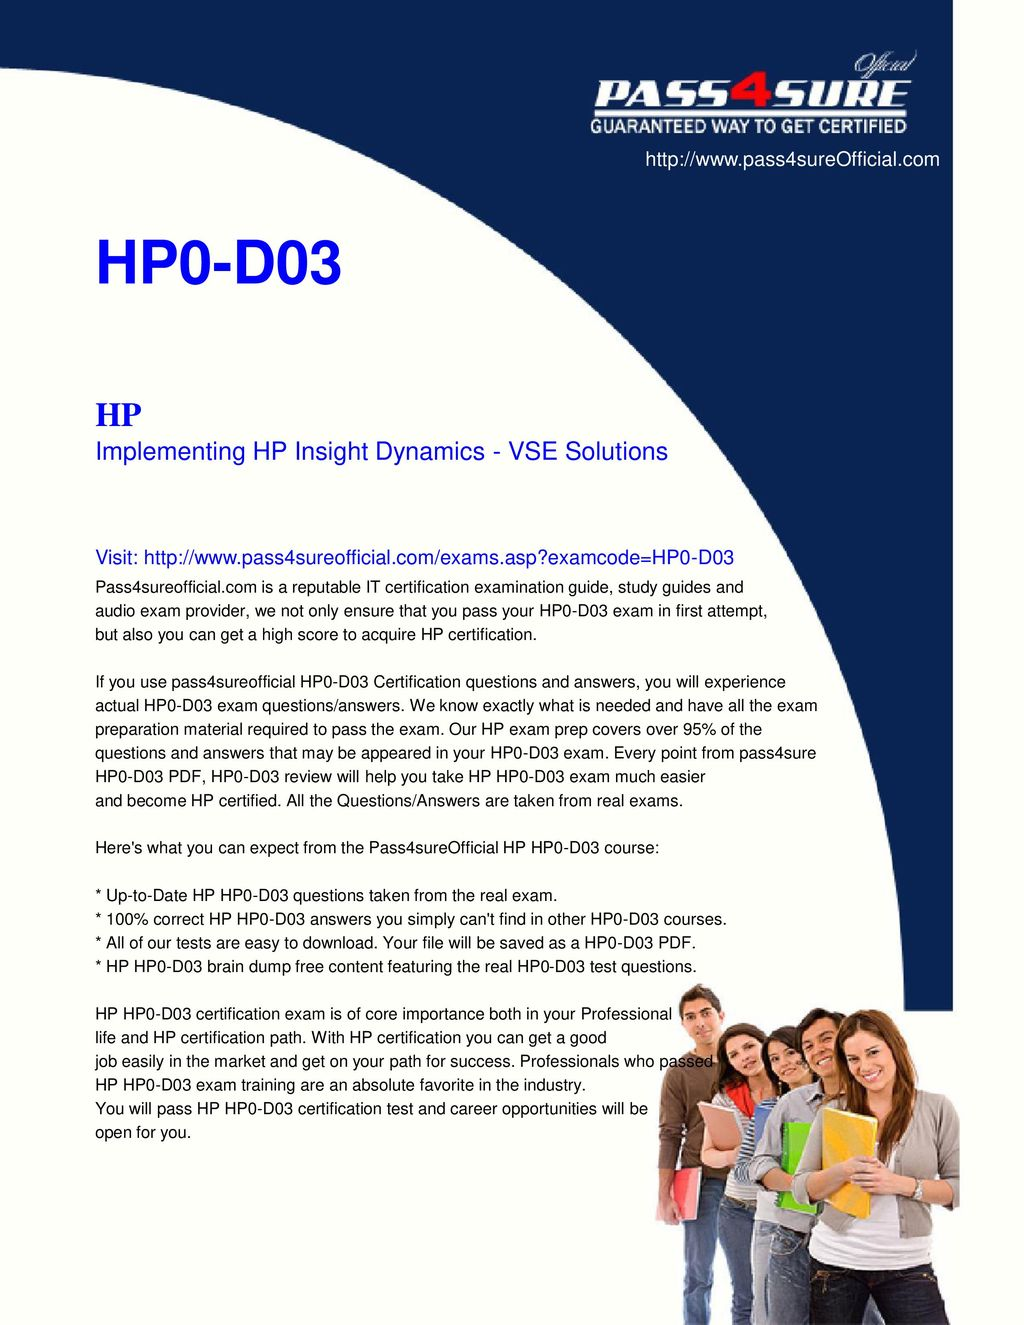 HP0 D03 HP Implementing HP Insight Dynamics VSE Solutions